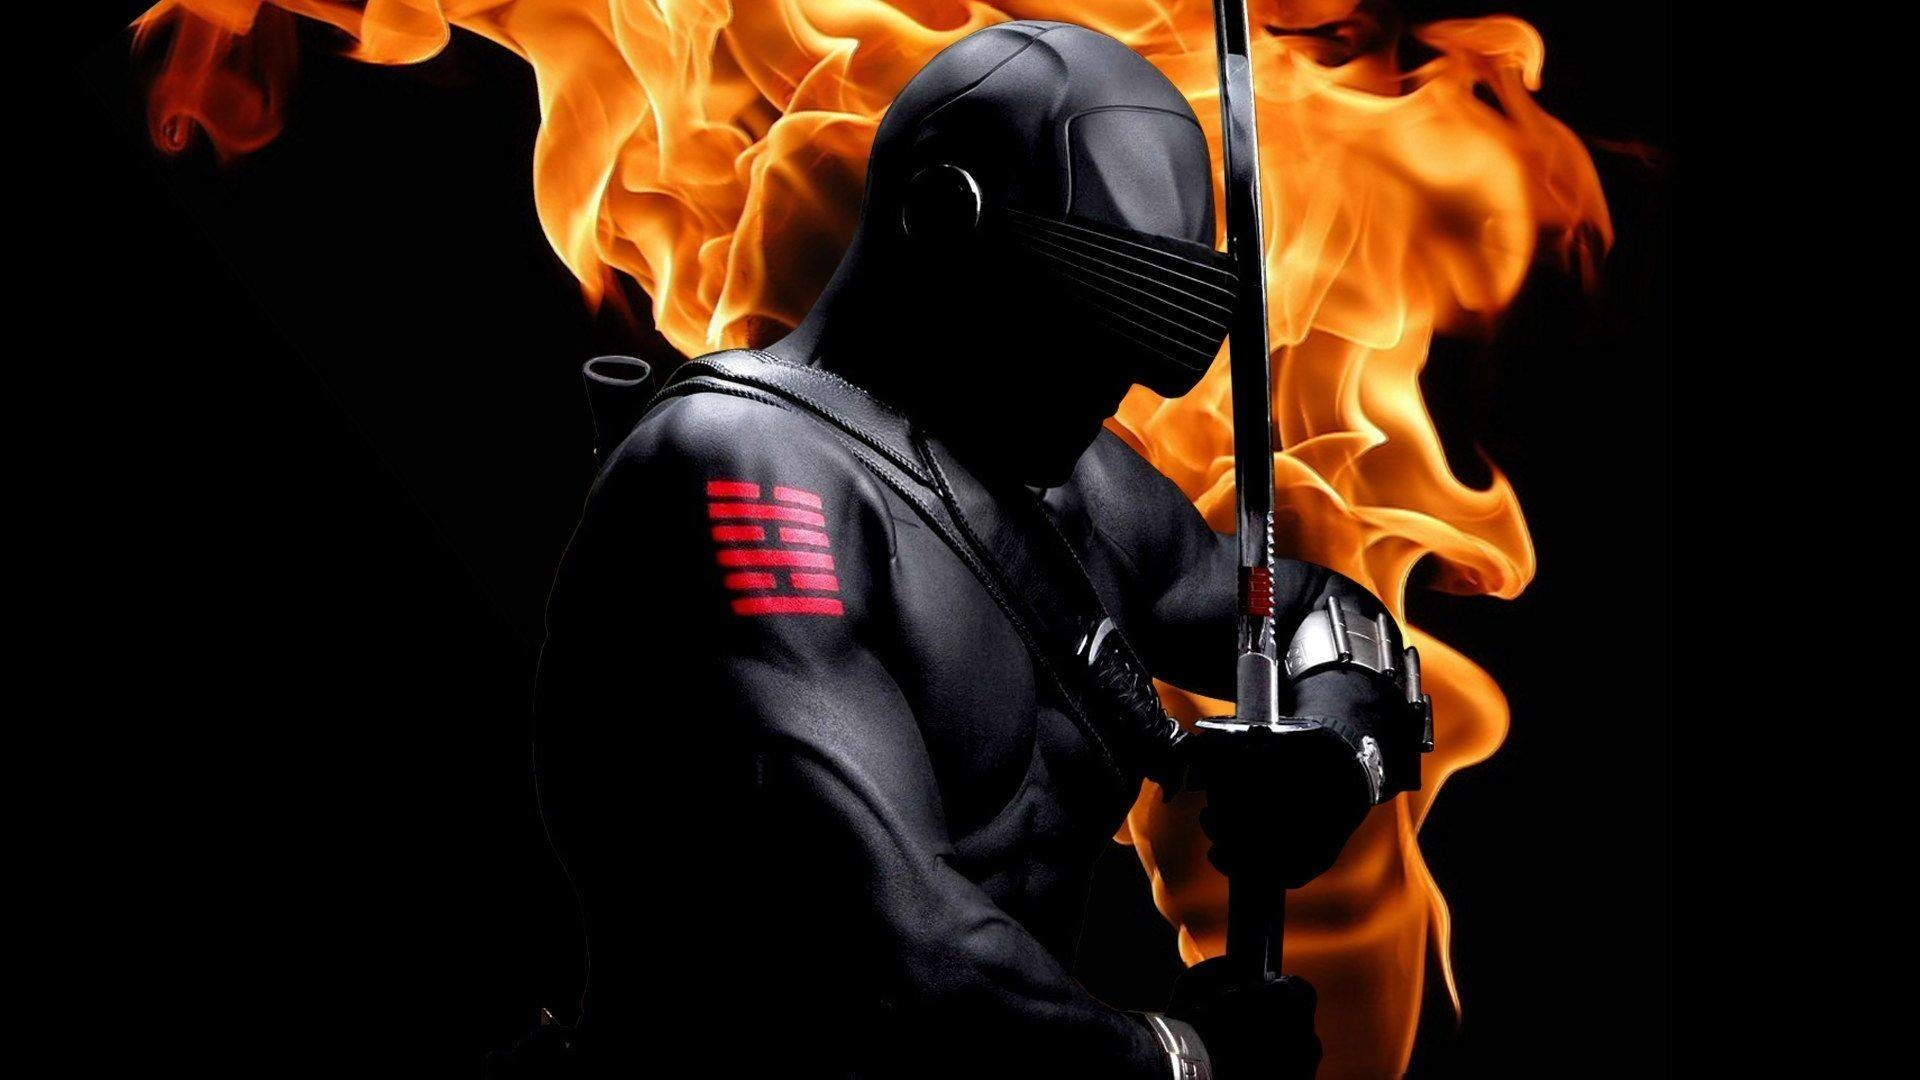 Res: 1920x1080, Snake Eyes (G.I. Joe) with sword on fire - Wallpapers Picture